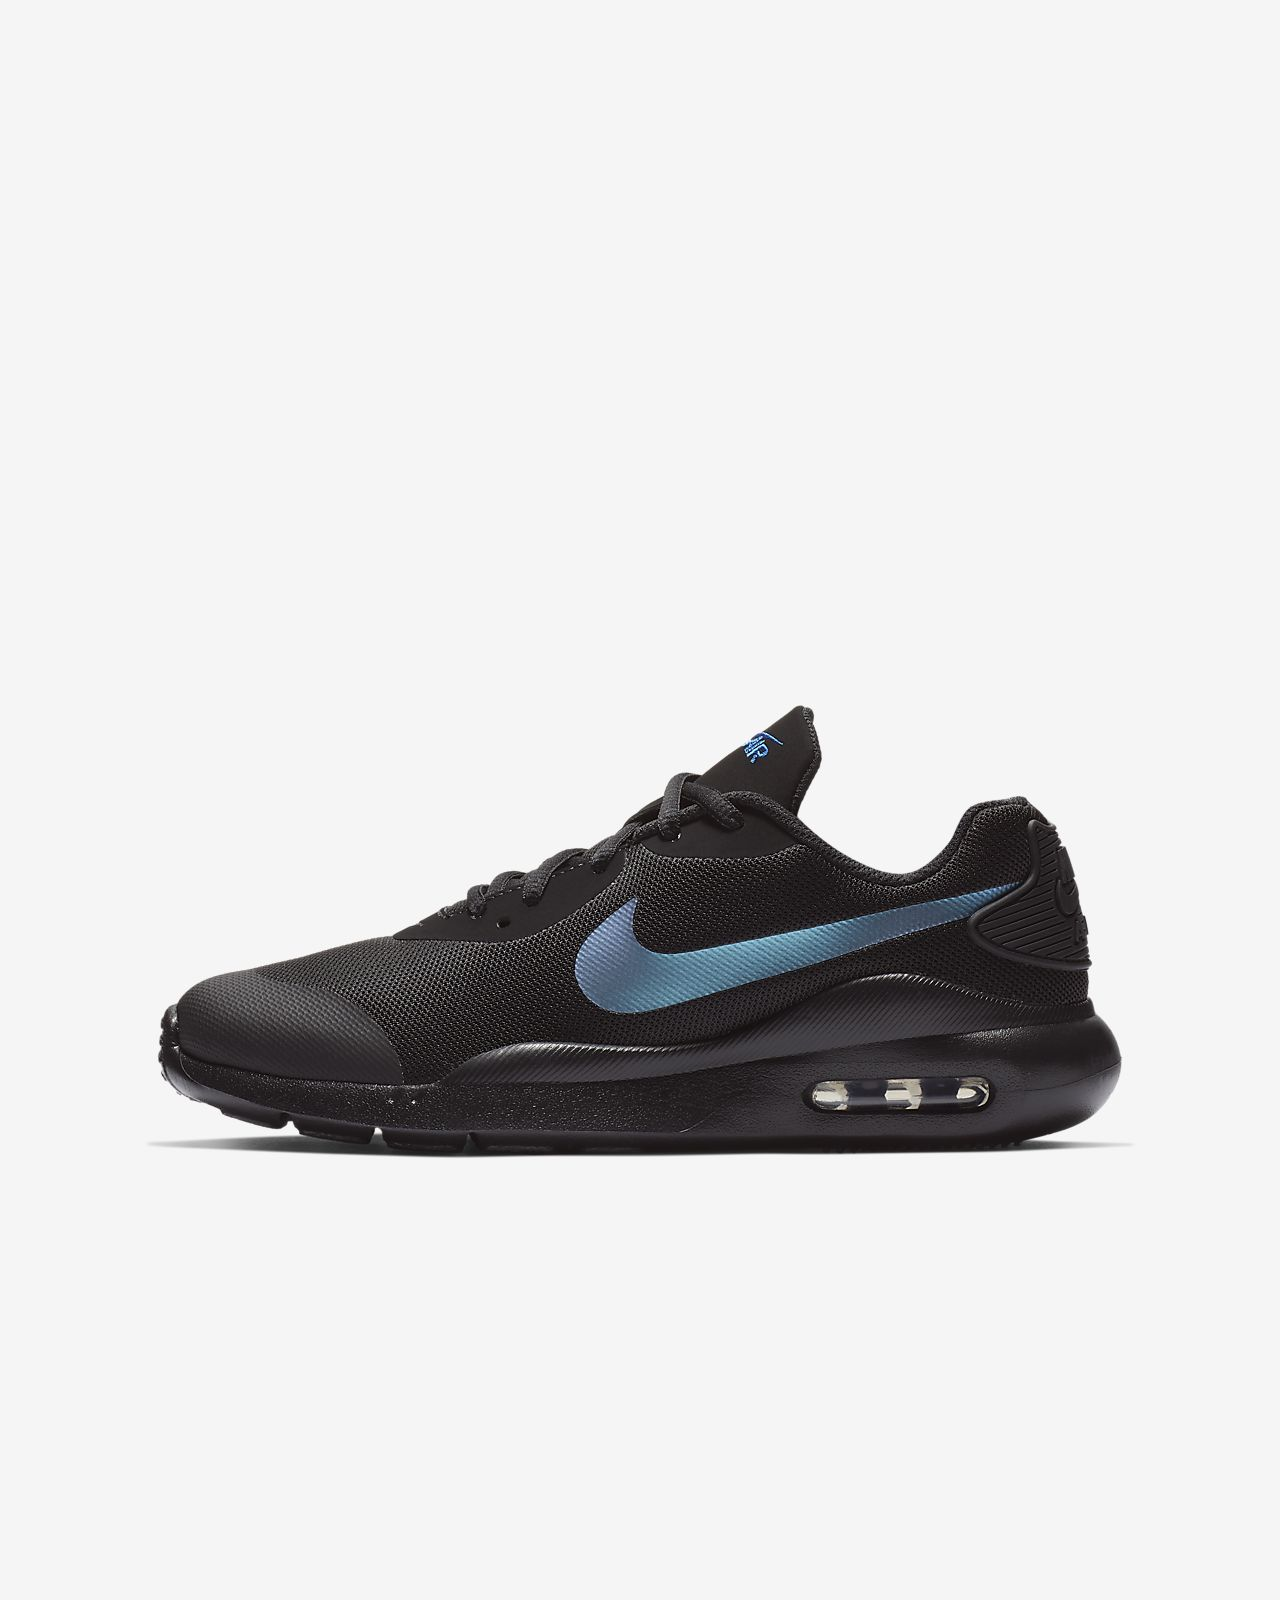 7fa3afa29644 Nike Air Max Oketo Big Kids  Shoe. Nike.com